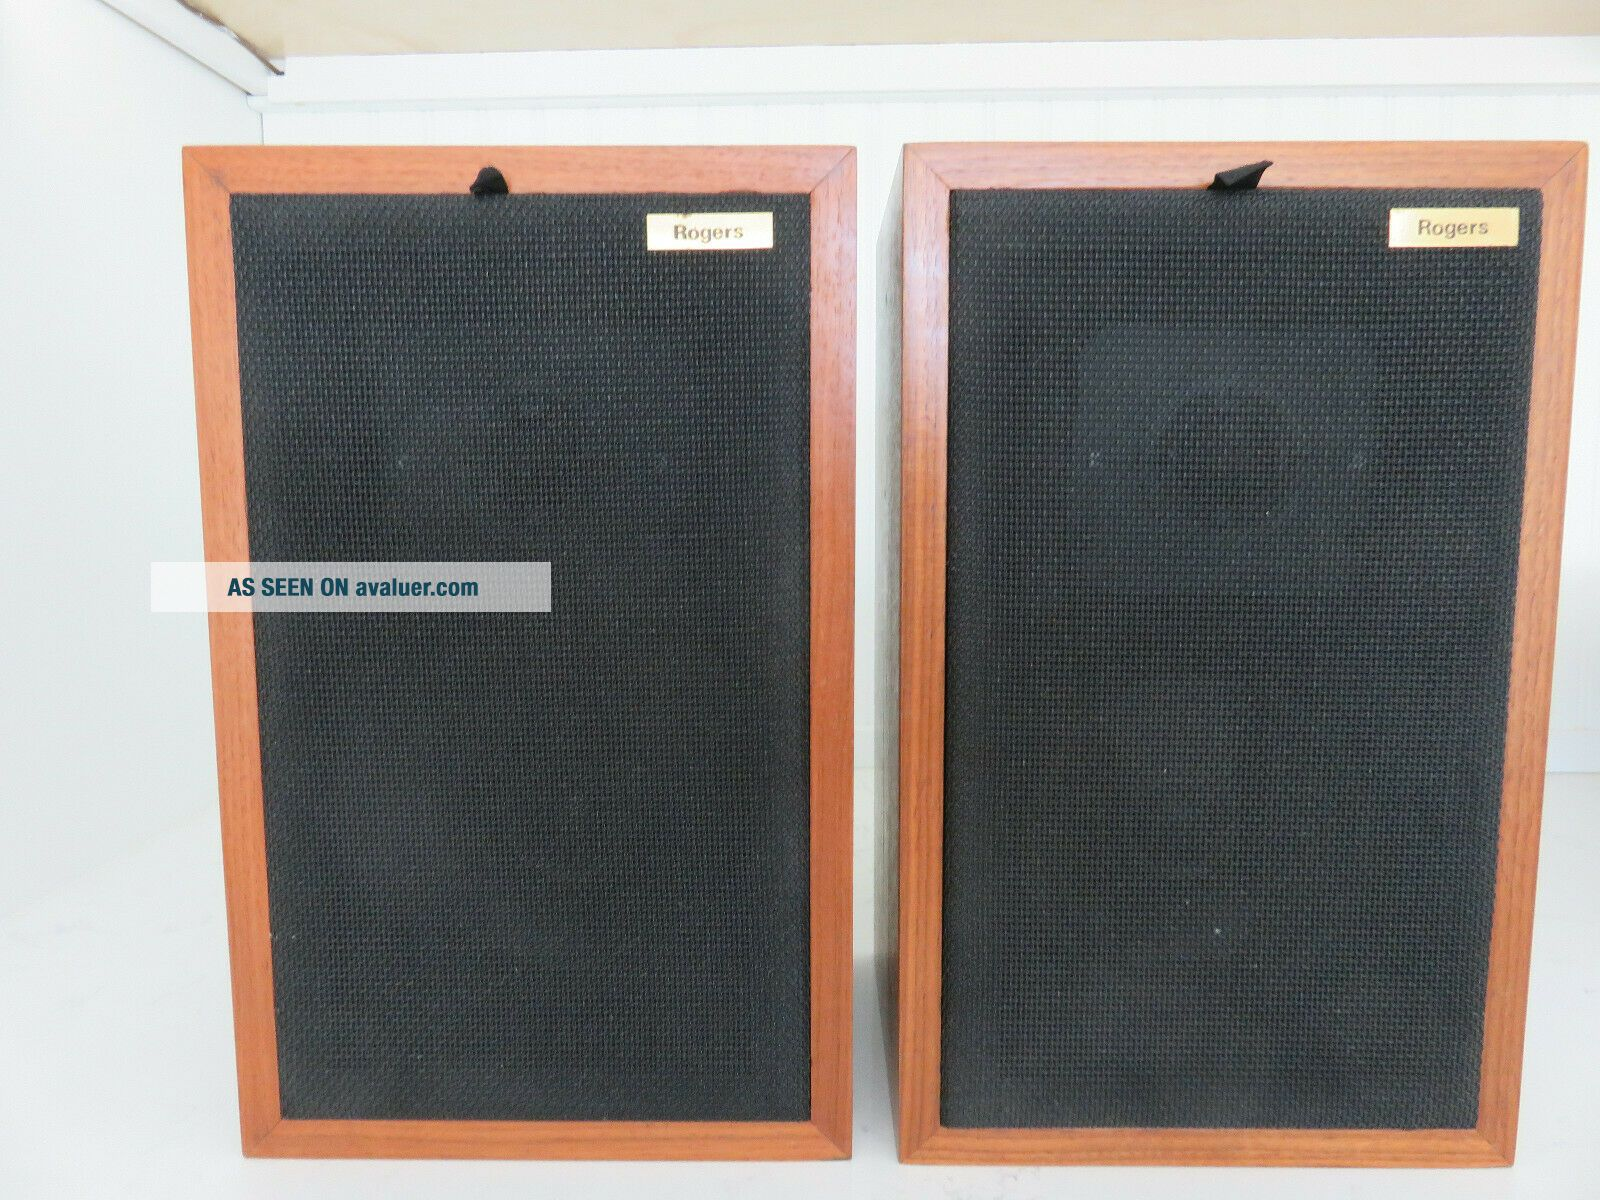 Rogers LS3/5A Gold Badge BBC Studio Monitor Speakers